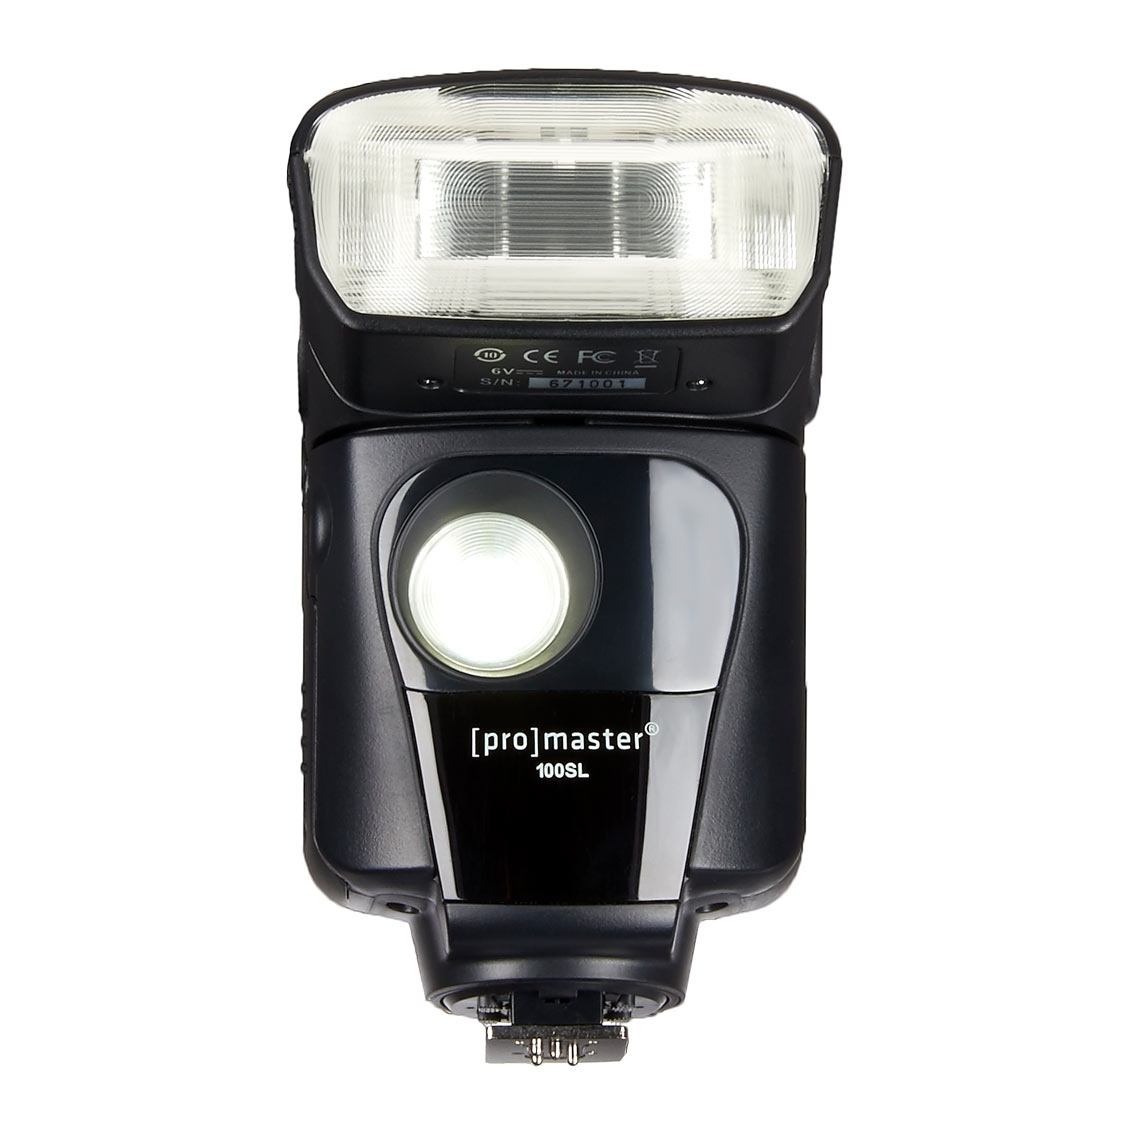 Promaster 100SL Flash for Nikon